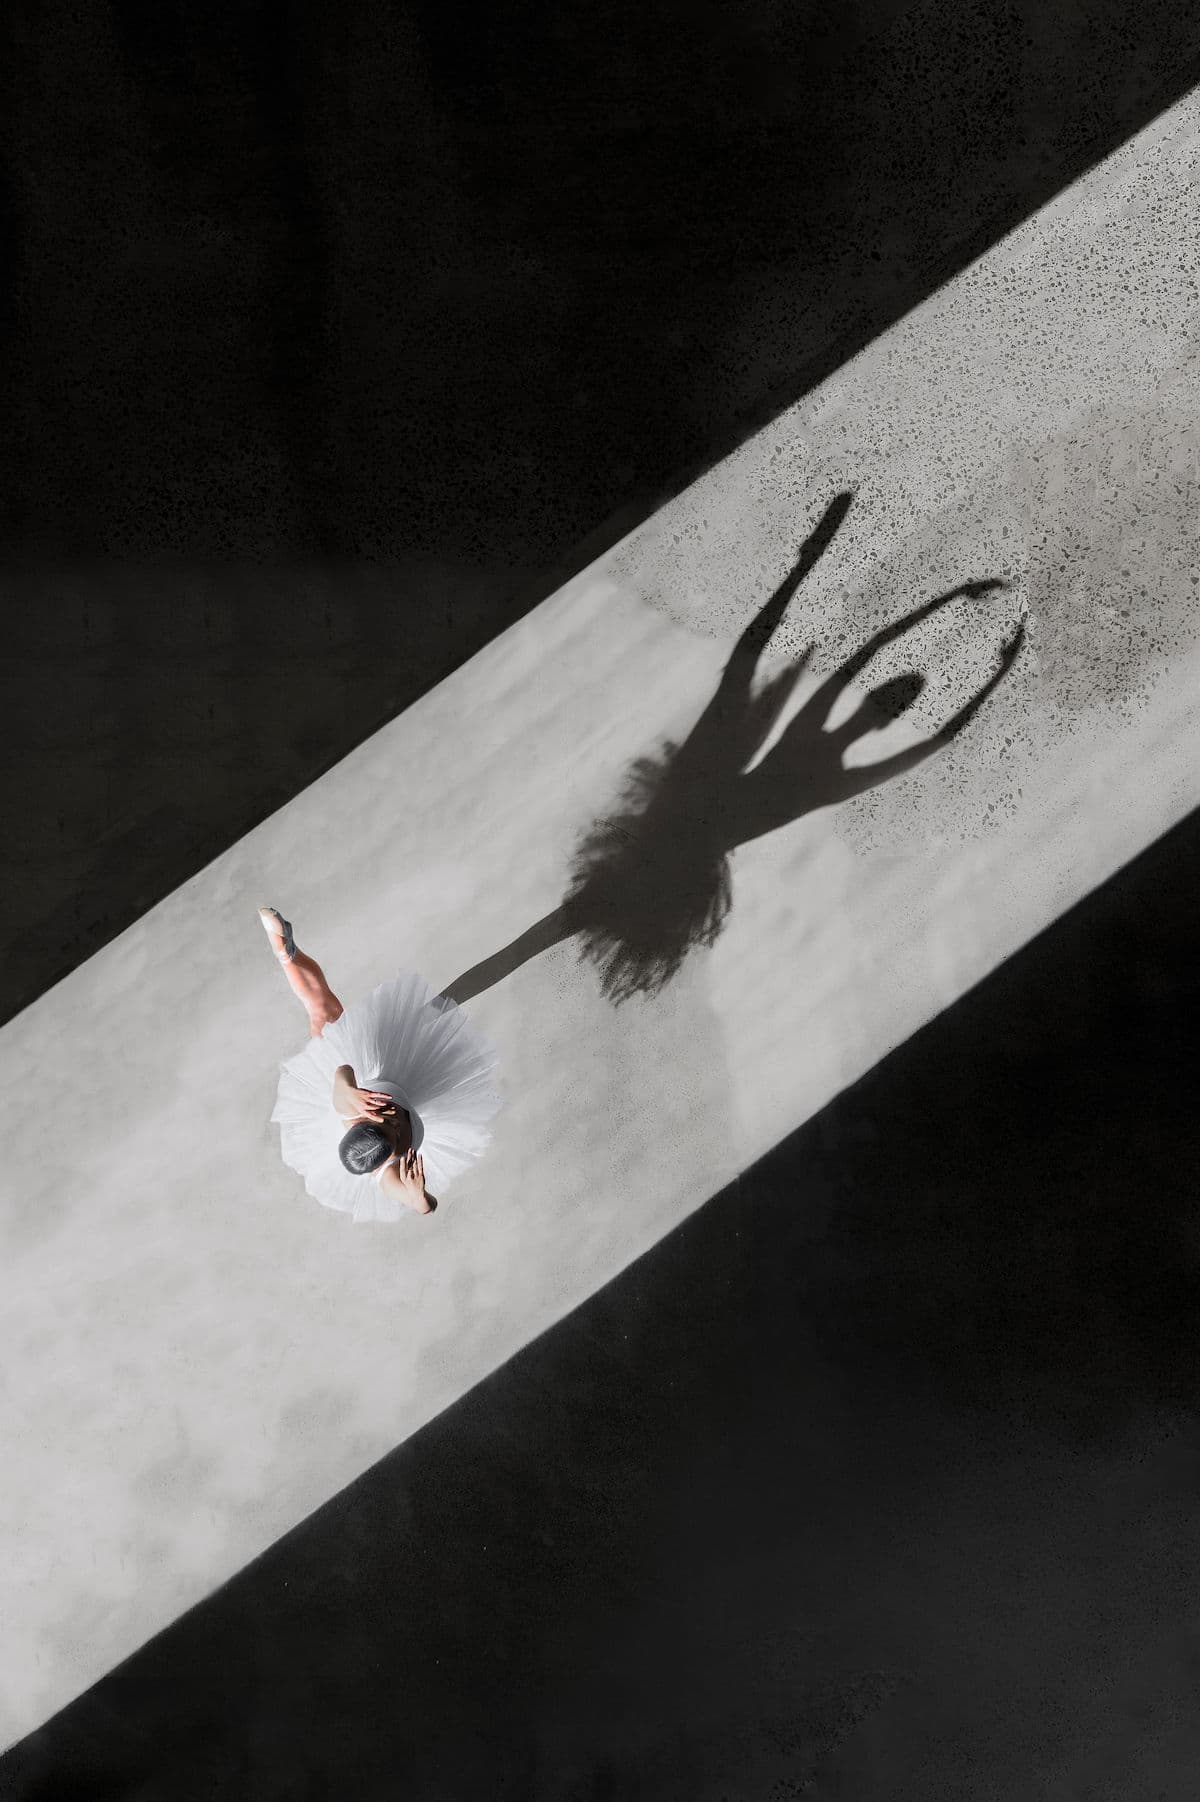 Ballerina Photographed with Shadow Cast on Pavement